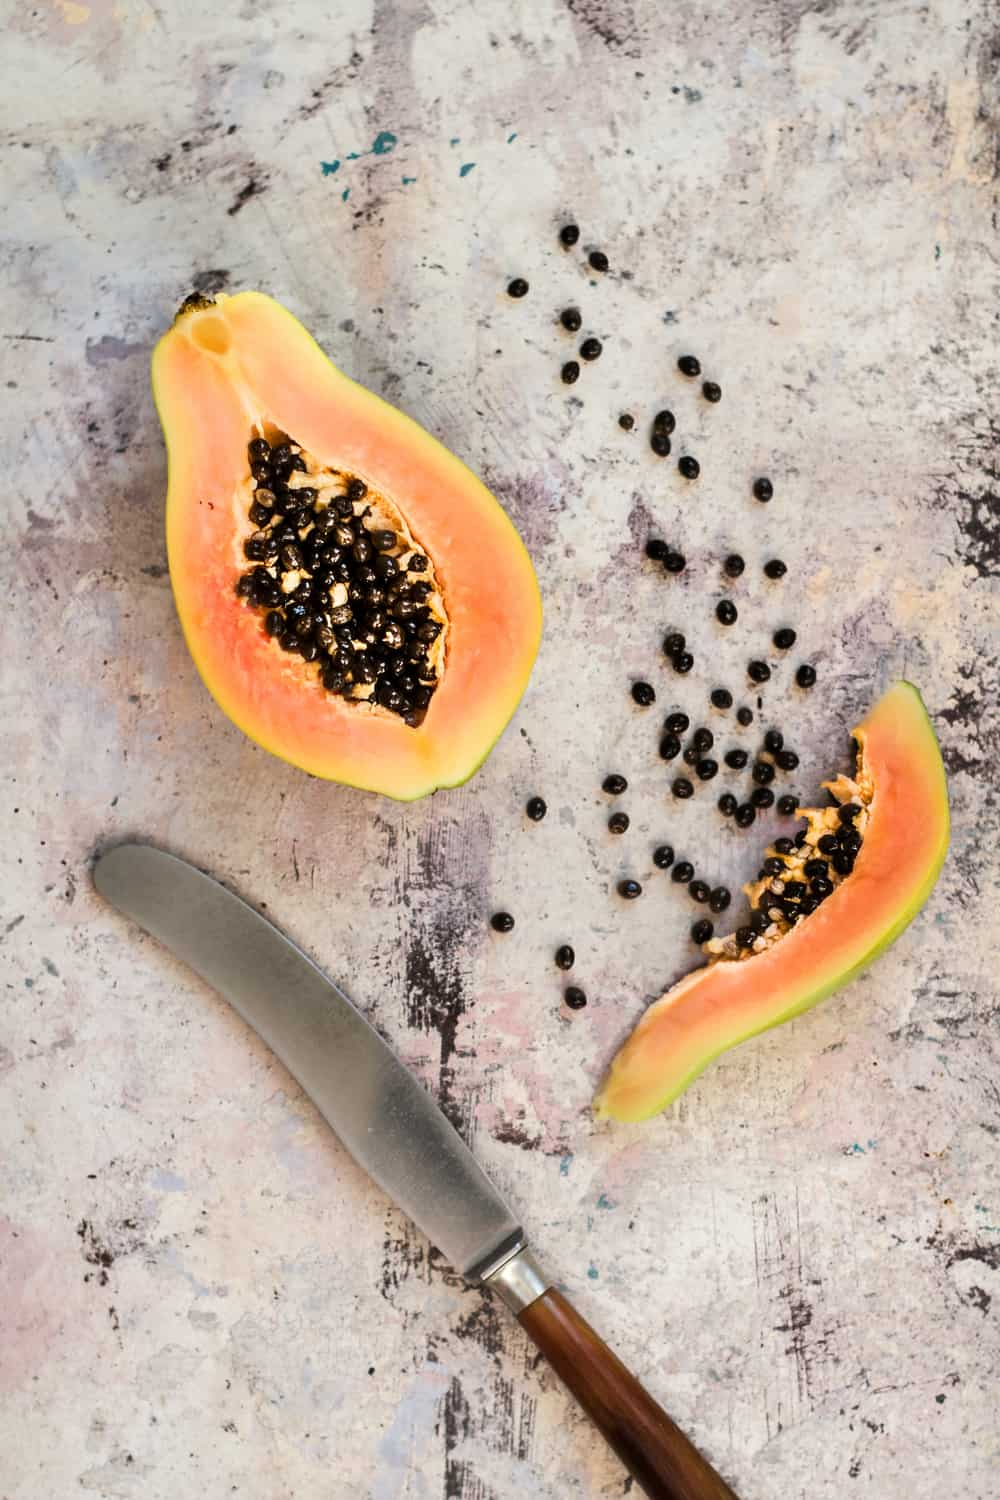 The Risk of Consuming an Expired Papaya